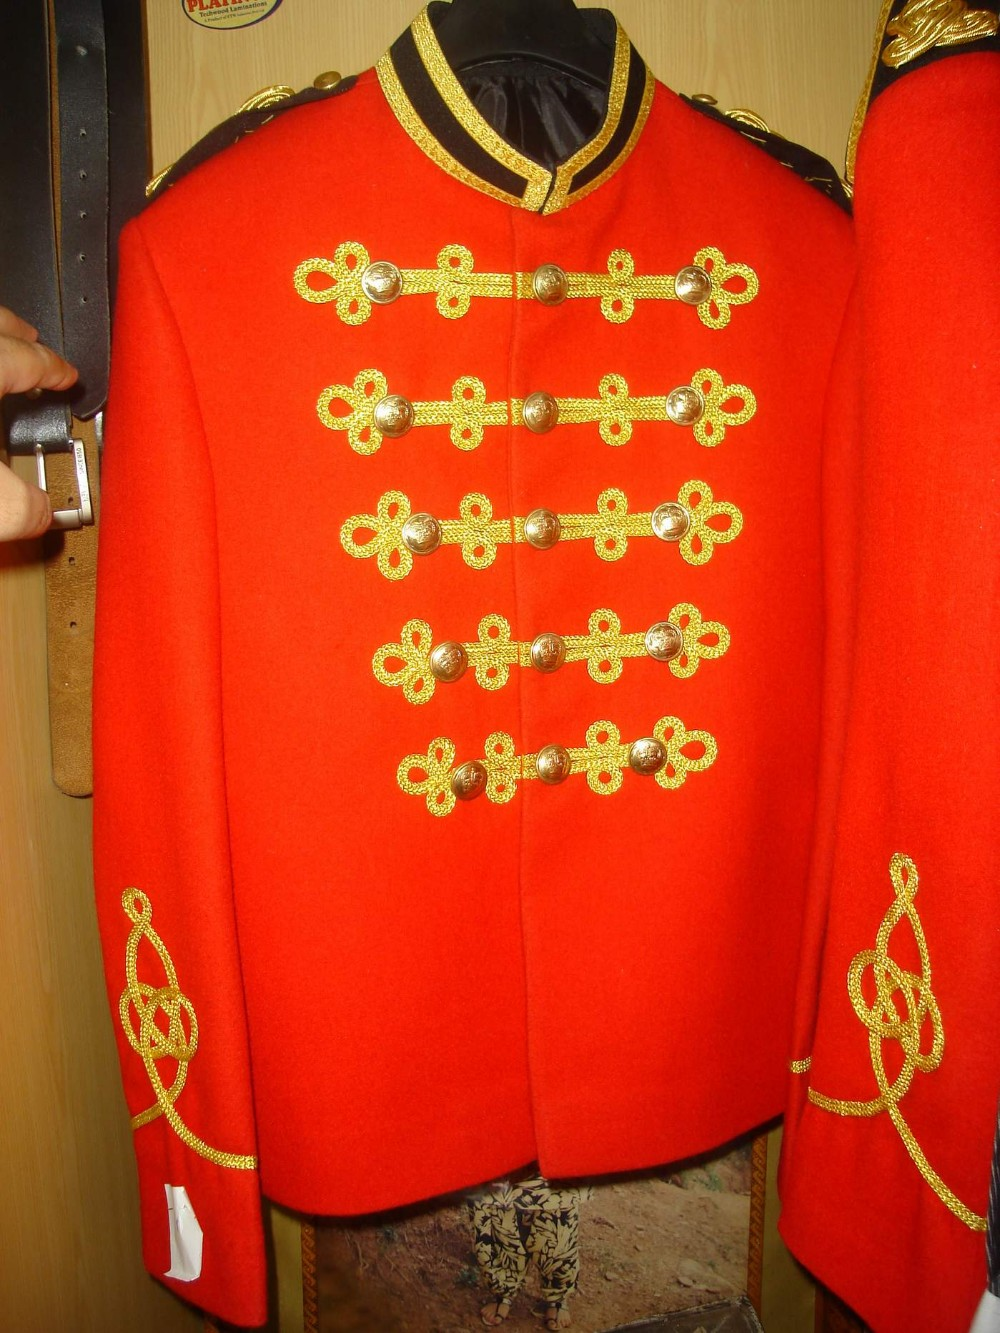 Royal militaire jas RMLI tuniek marching band uniform Britse uniform